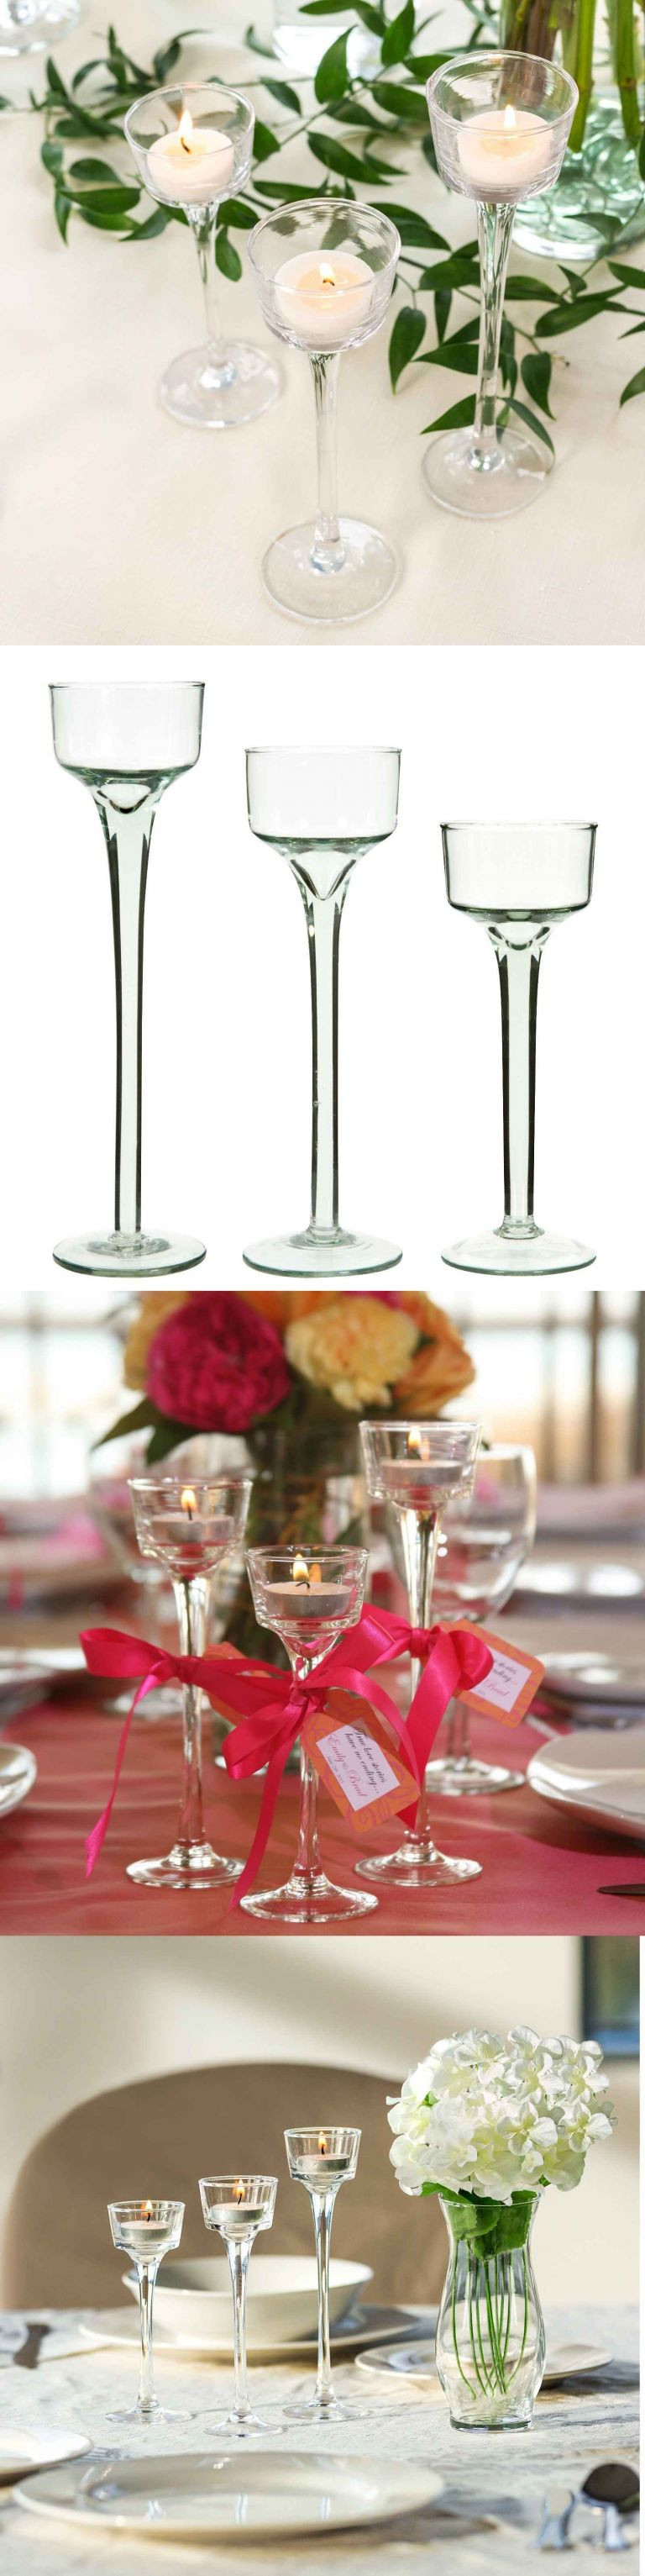 antique mercury glass vases of gold mercury glass vases fresh faux crystal candle holders alive pertaining to gold mercury glass vases fresh faux crystal candle holders alive vases gold tall jpgi 0d cheap in